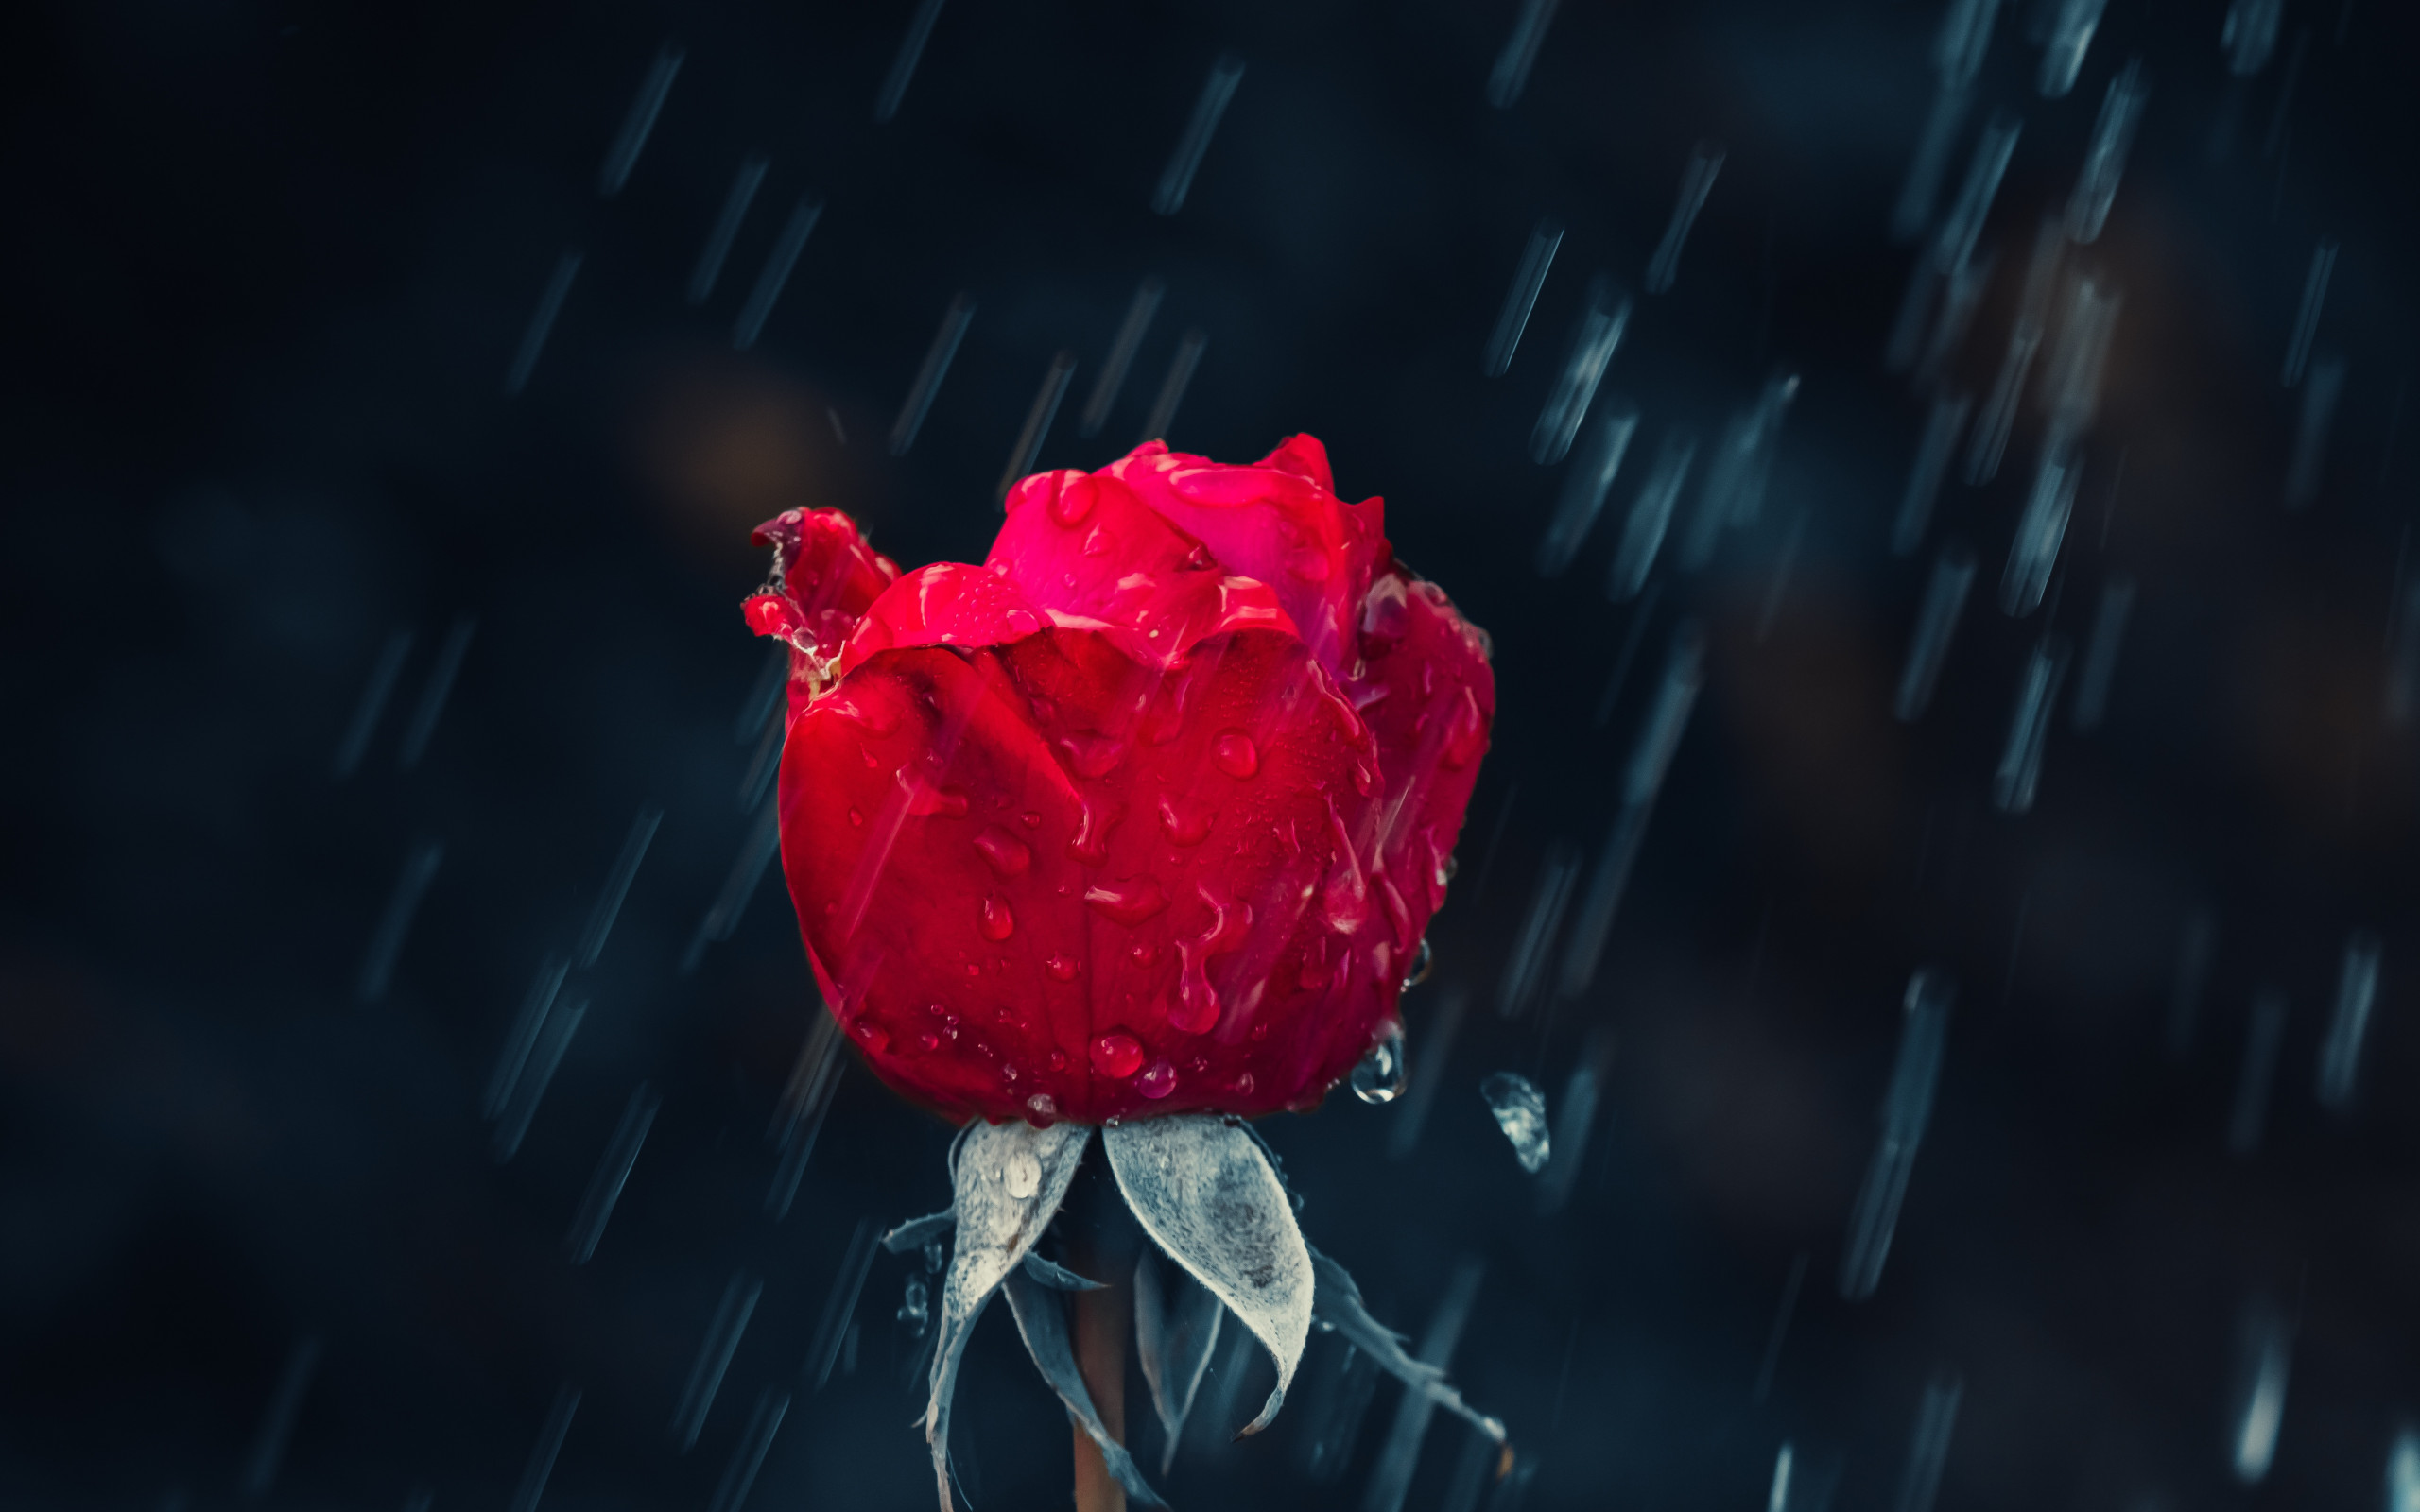 Red rose and raindrops wallpaper 2560x1600